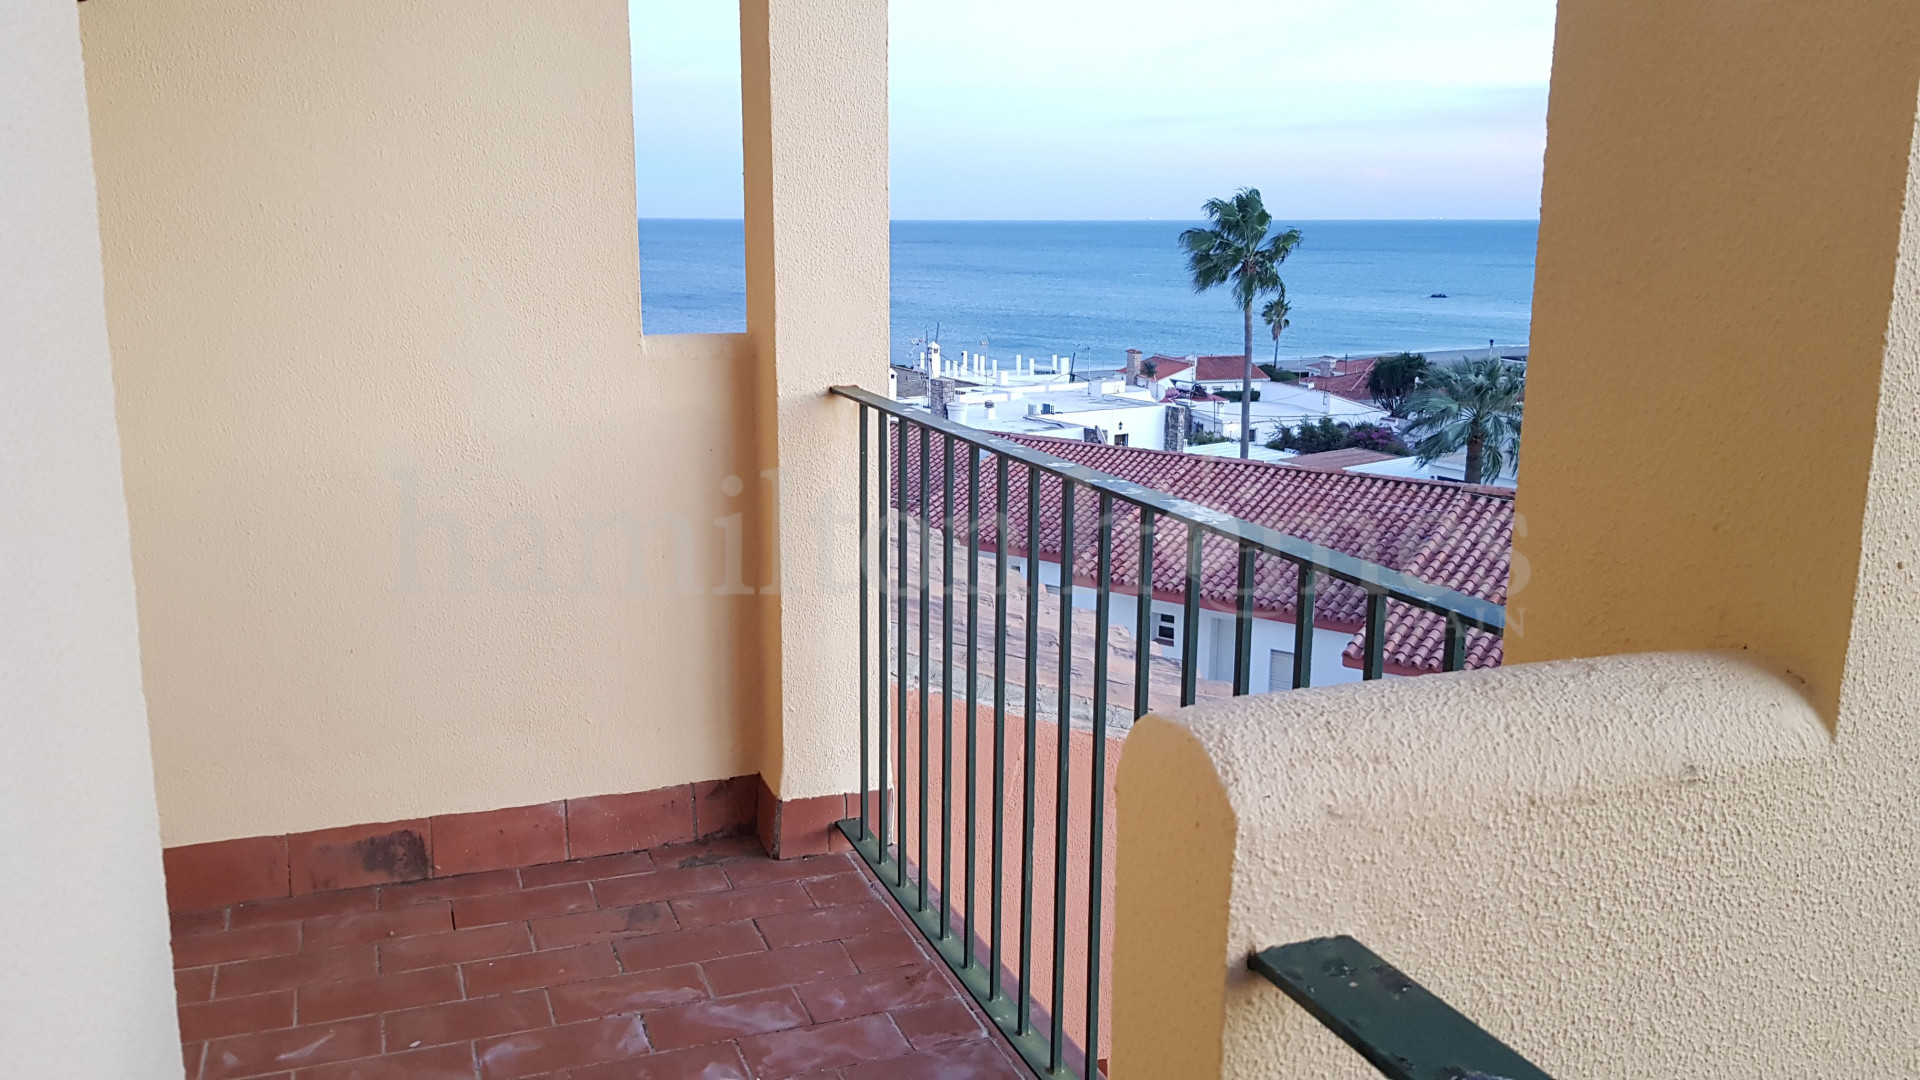 Apartment in Manilva Beach, Manilva